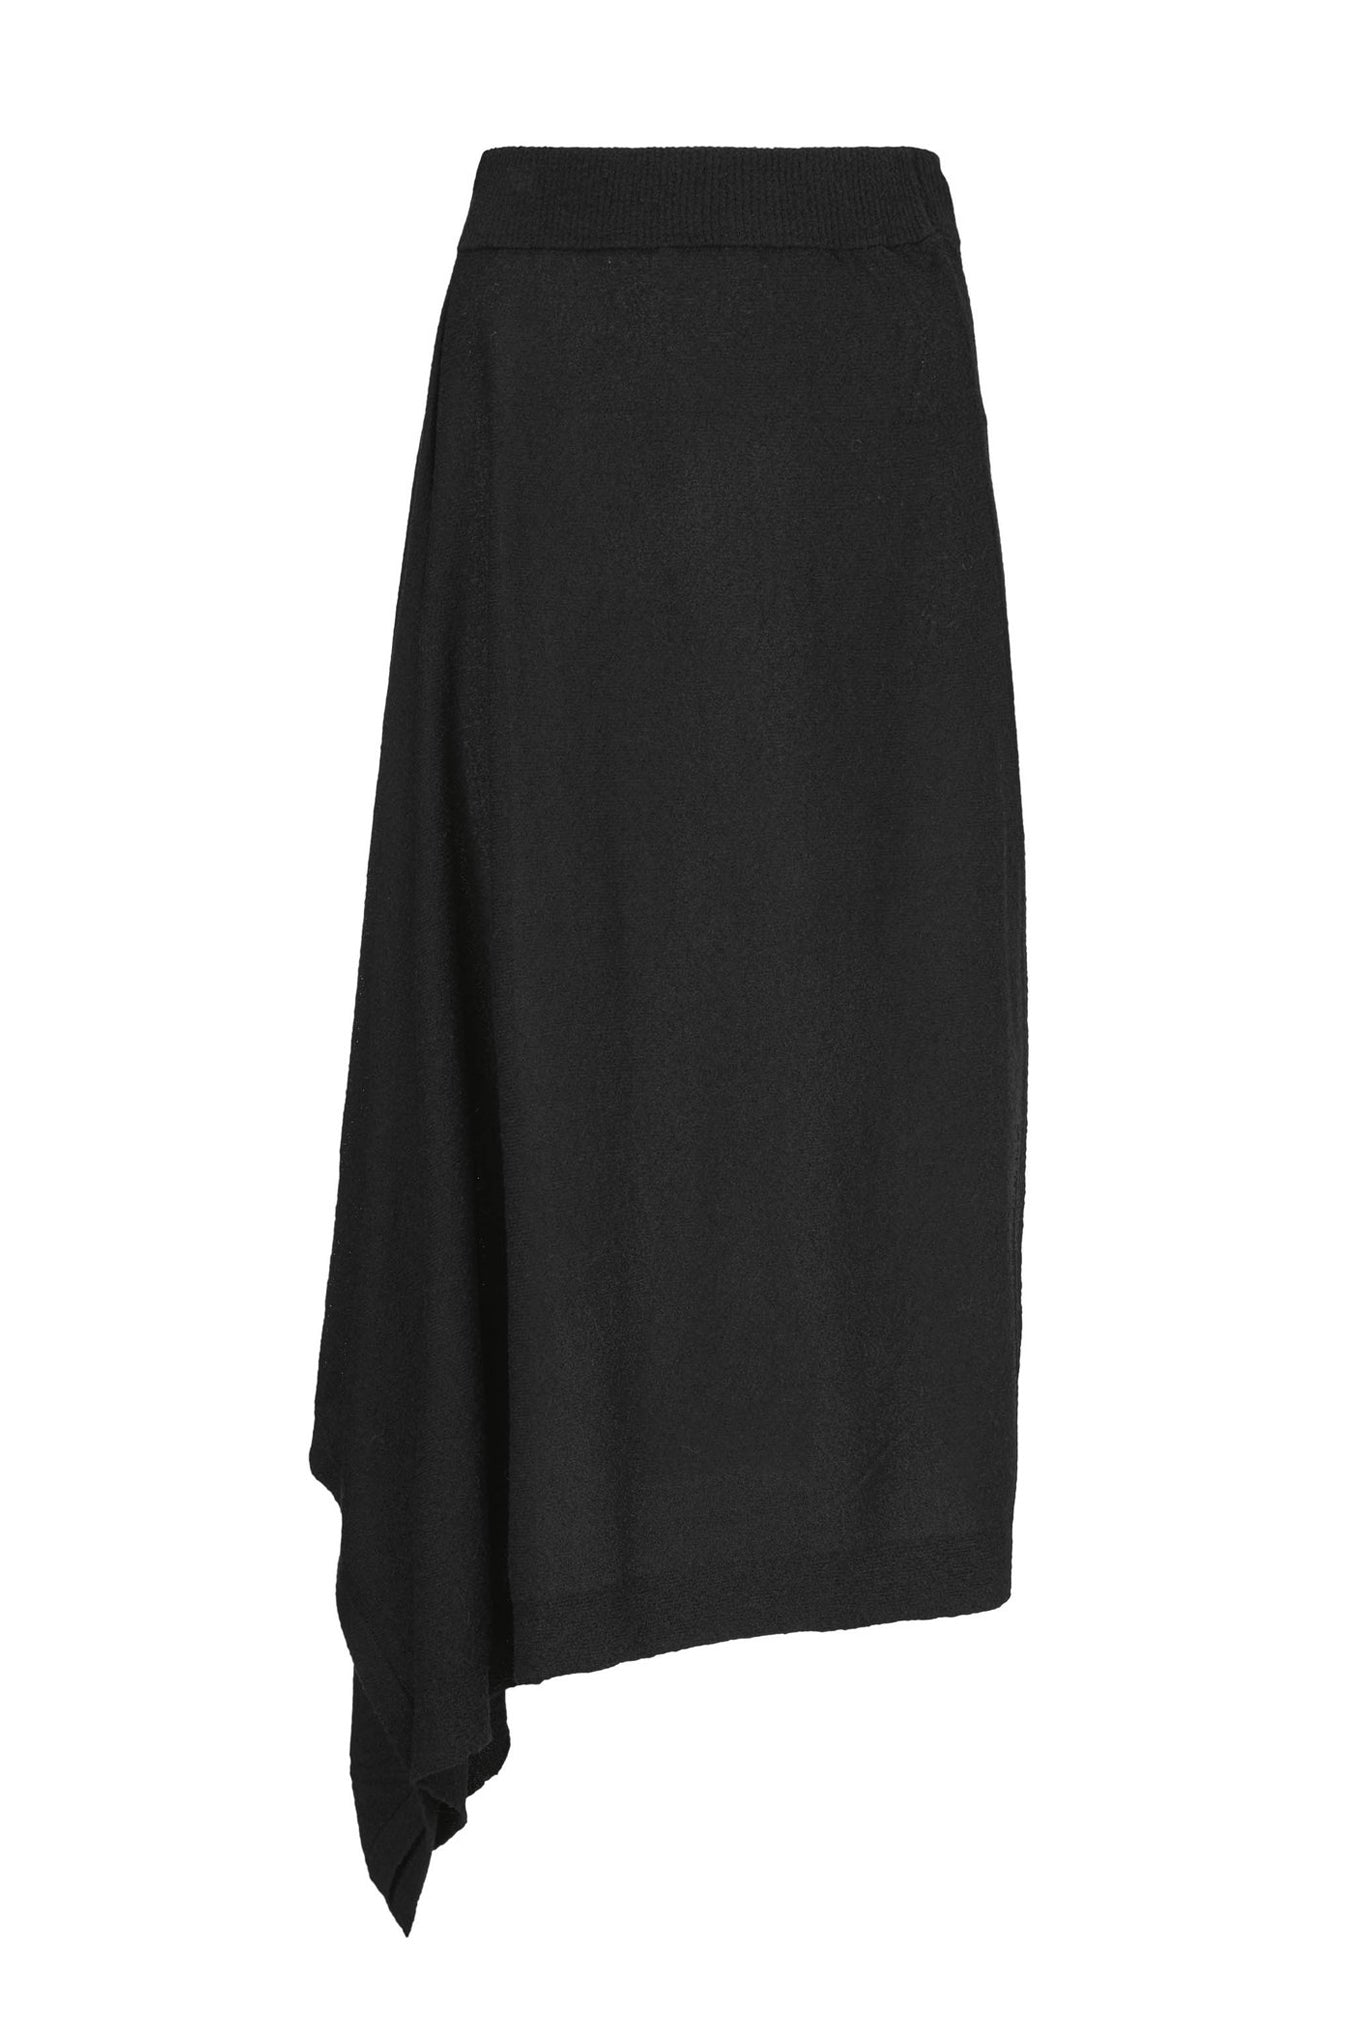 Nina Knit Skirt - Black - Silk Mix